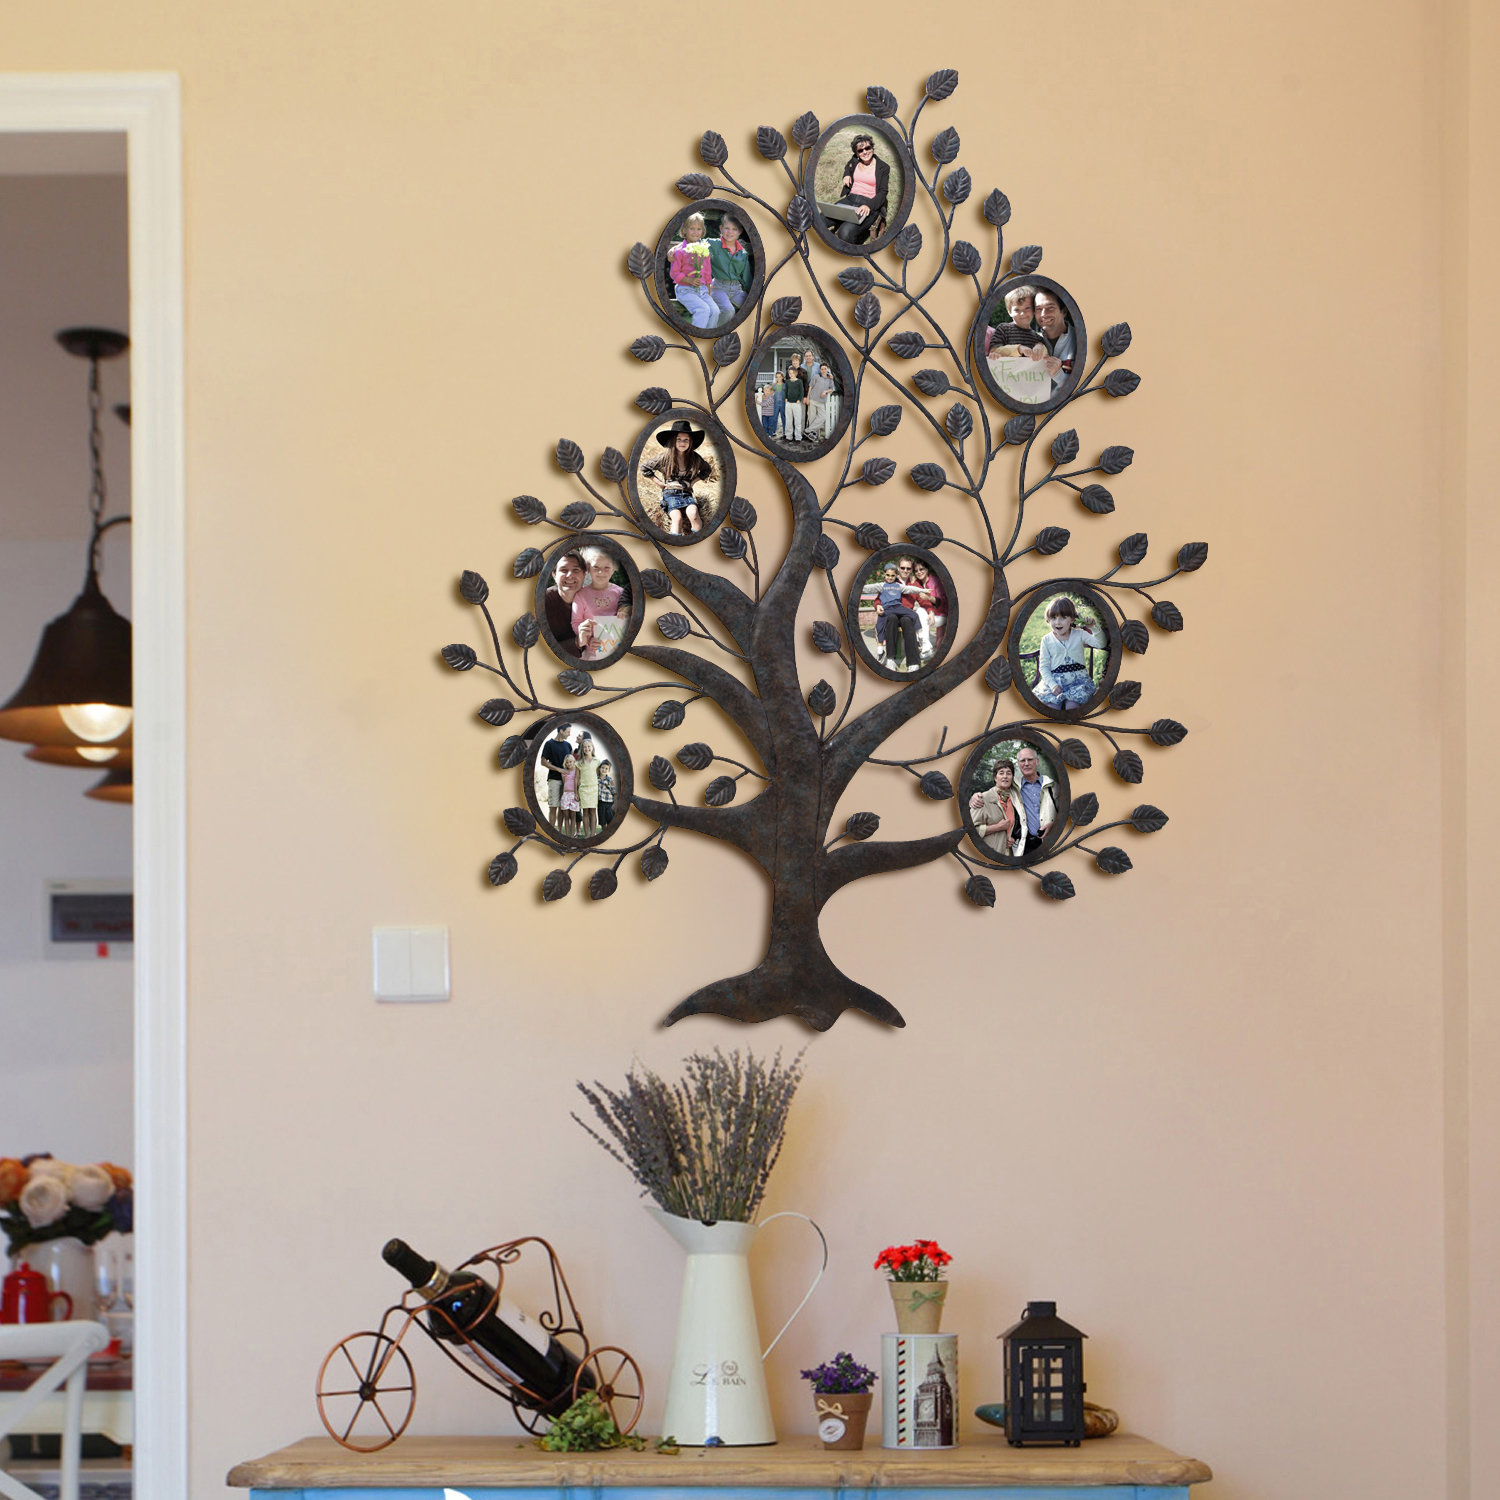 Tree Of Life Wall Decor By Red Barrel Studio Inside Most Recent Red Barrel Studio Medlock 10 Opening Decorative Family Tree Wall (Gallery 4 of 20)